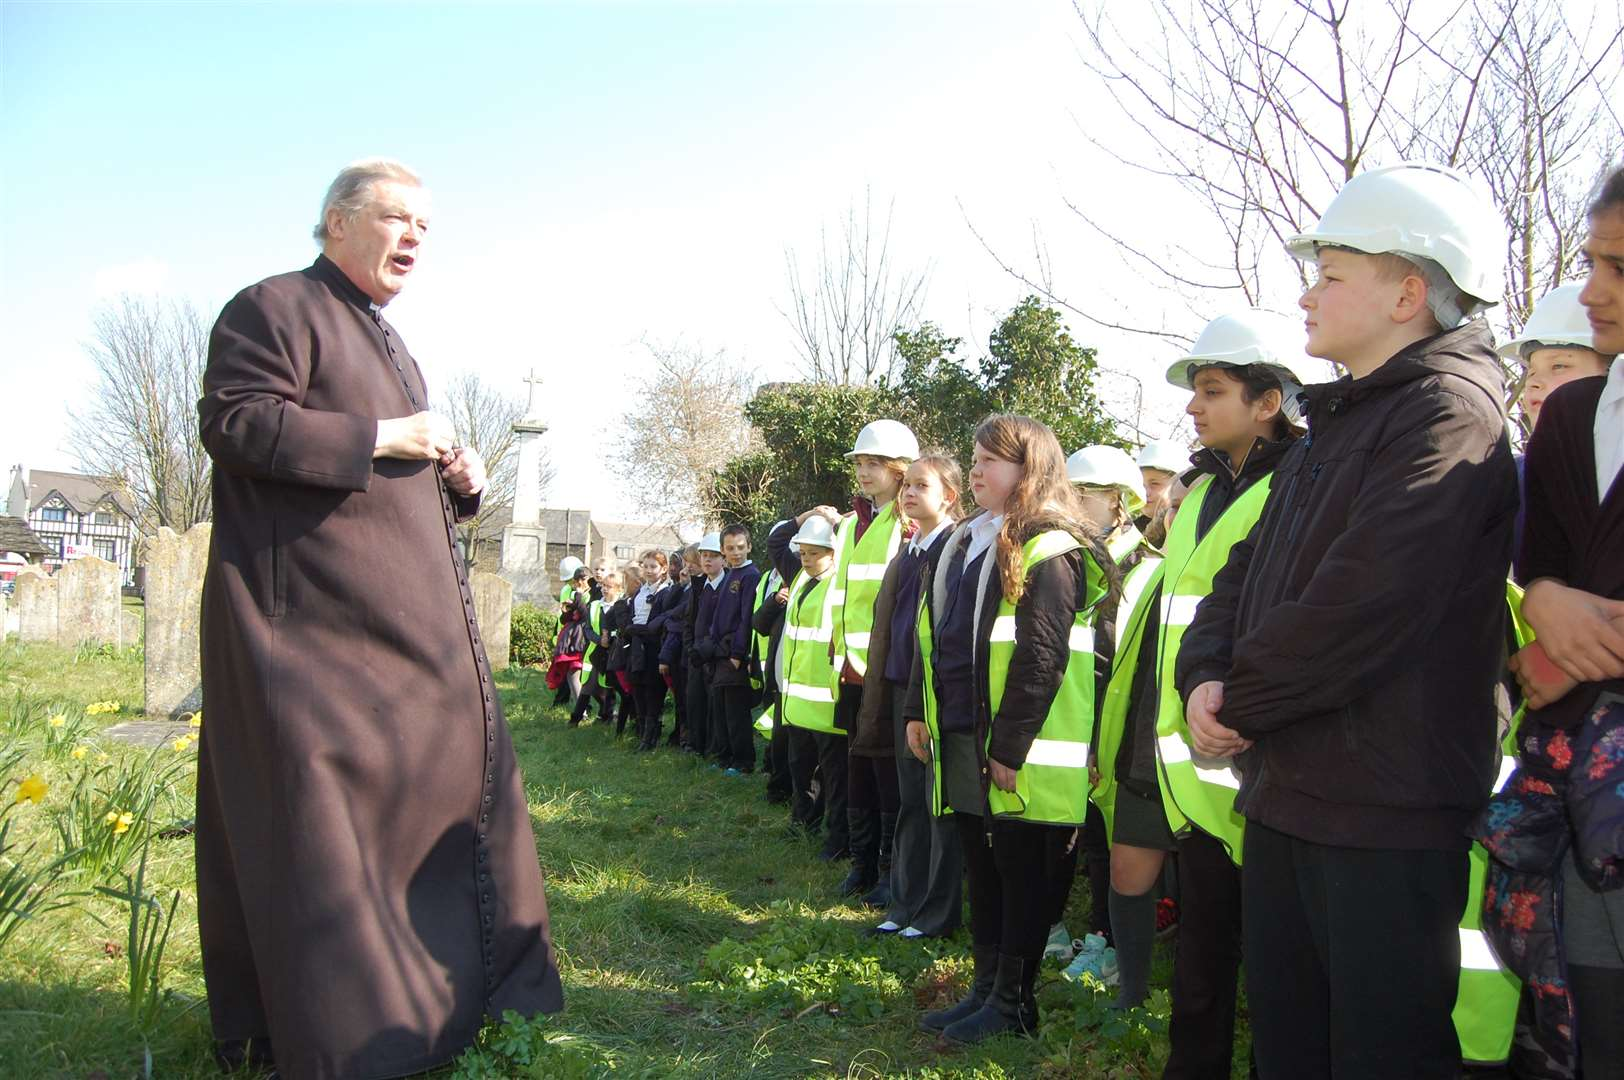 Vicar Laurence Smith addresses pupils from Lawn Primary School outside St Botolph's Church in Northfleet.